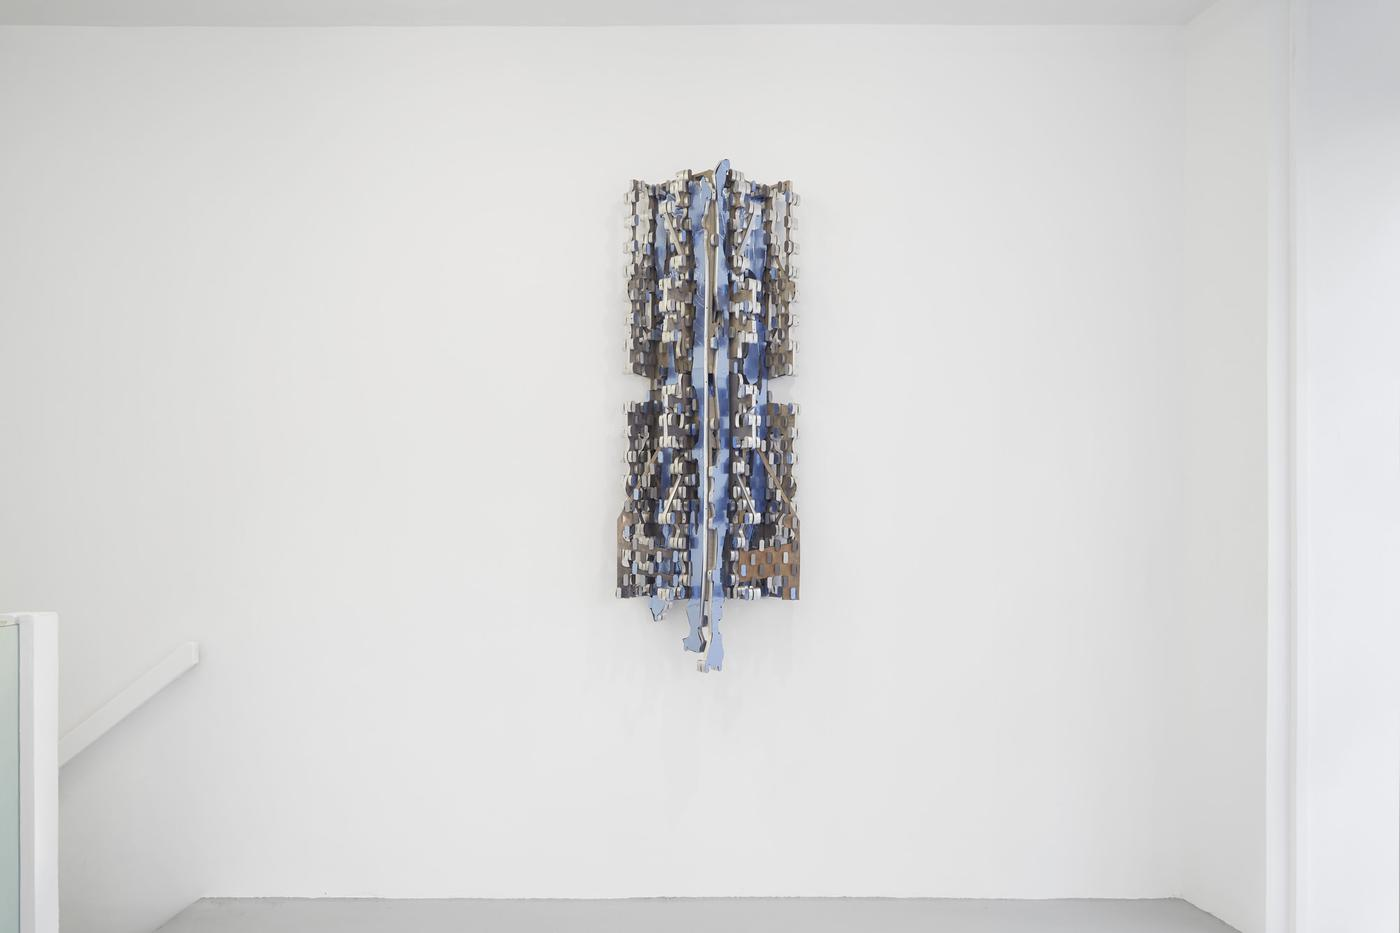 Installation view, I Held the Landscape in My Arms, Josh Lilley Gallery, London, United Kingdom, 2018